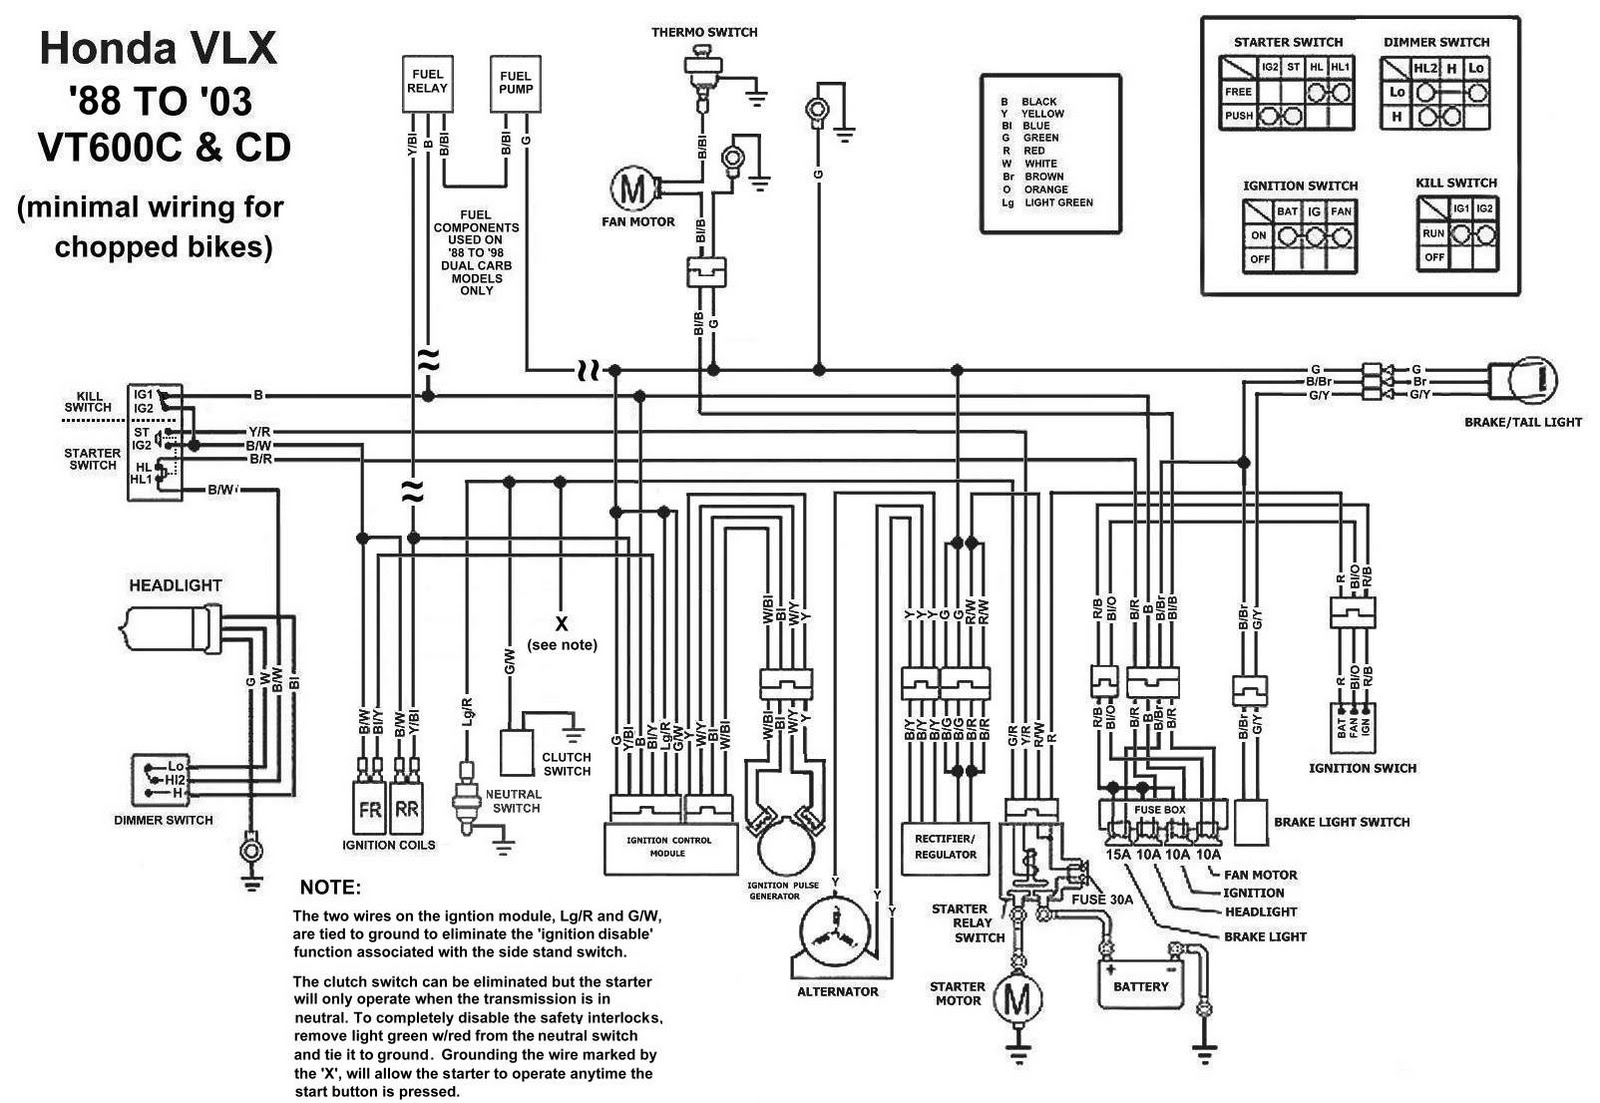 vtx 1800 c wiring diagram honda vt600 wiring diagram honda wiring diagrams